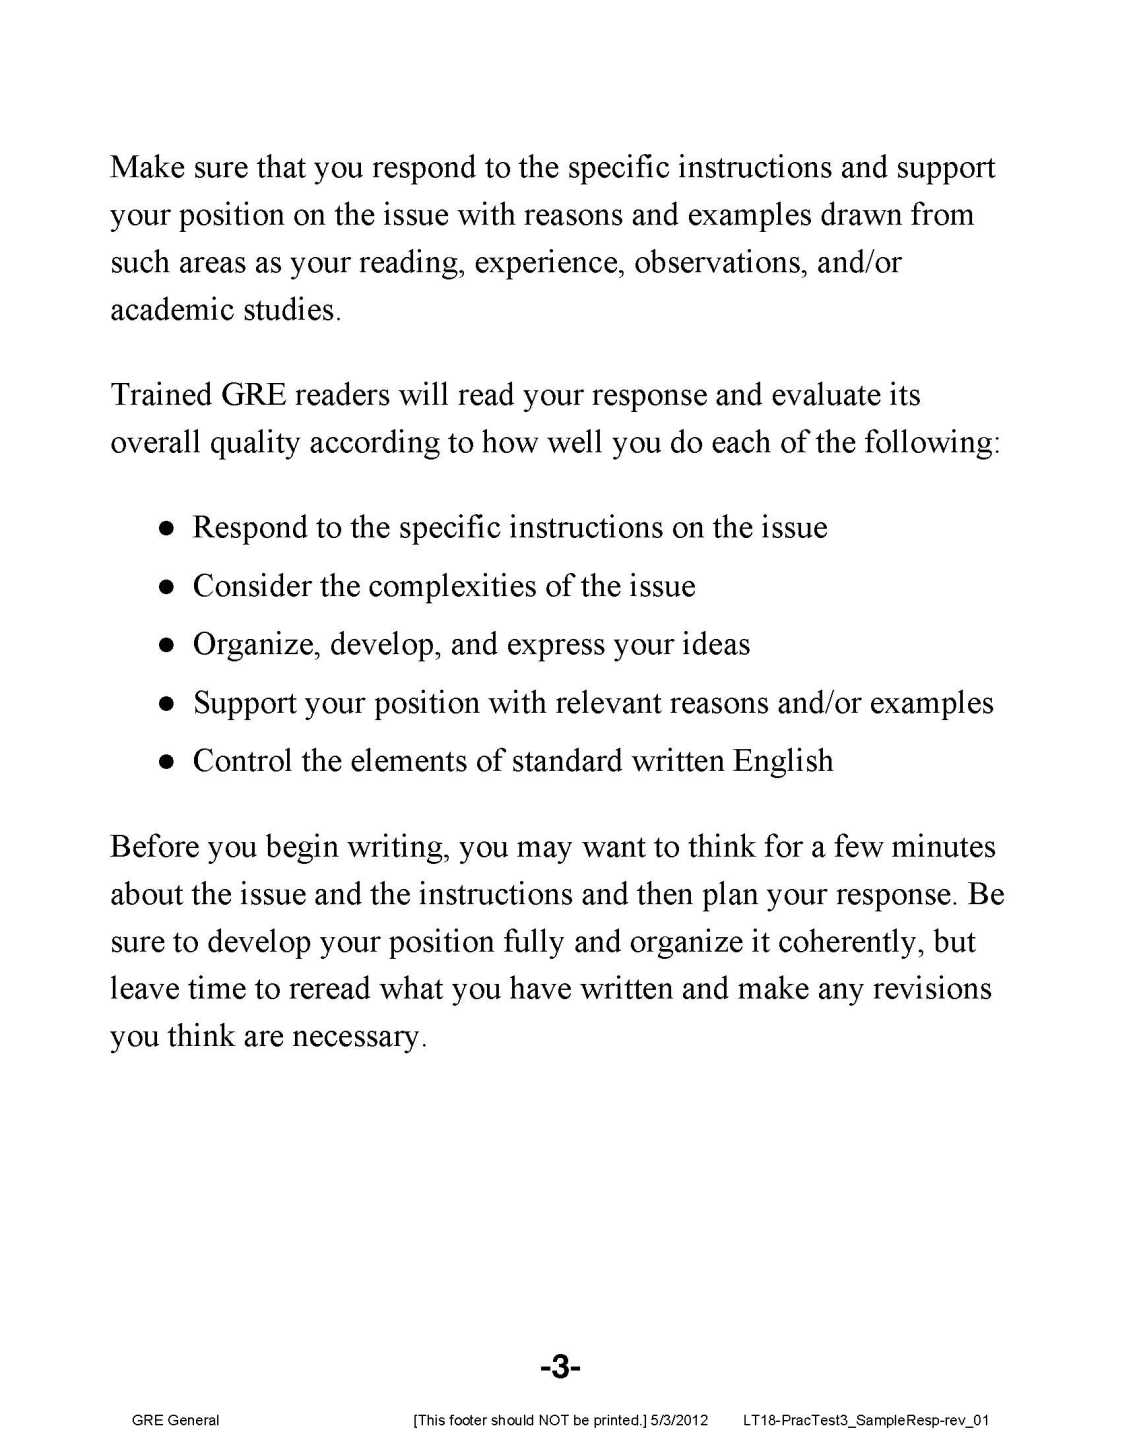 020 Biography Essay Gre Analytical Writing Sample Essays Impressive Conclusion Examples College Titles Full